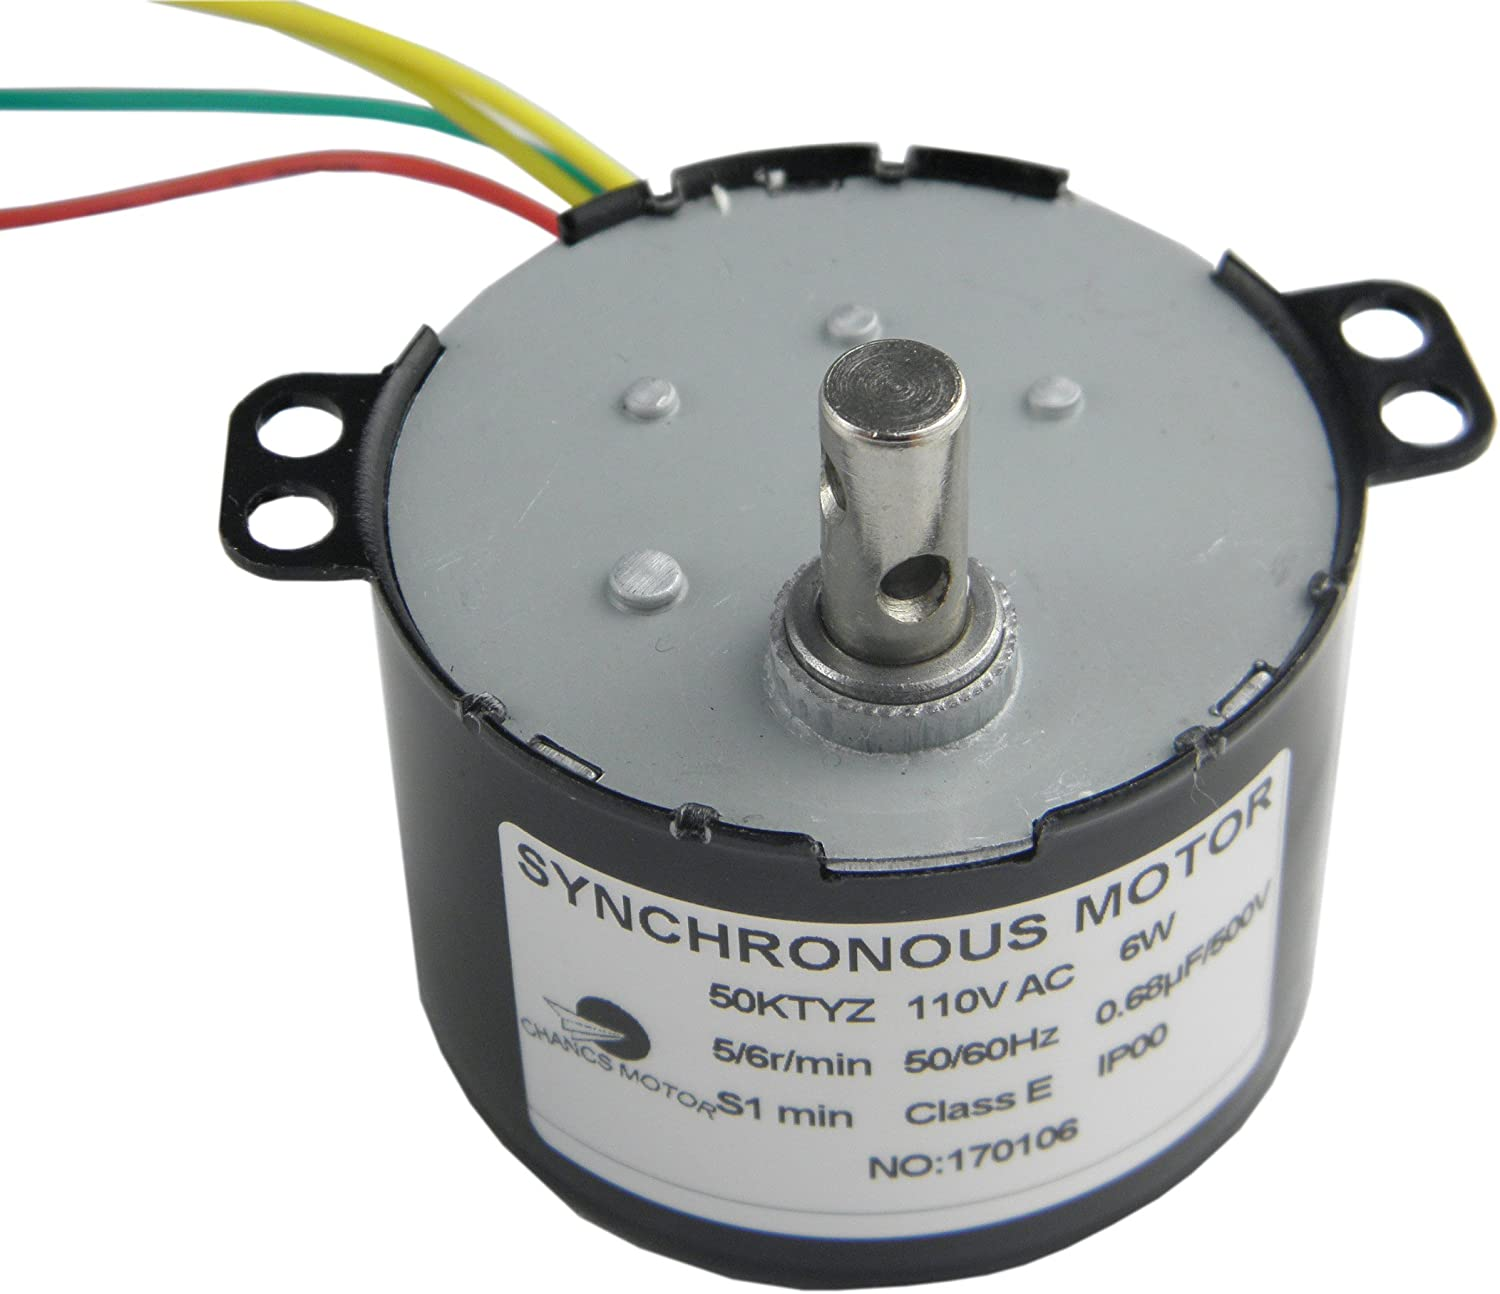 CHANCS 50KTYZ AC 110V 5/6RPM Synchronous Motor 6W CE Pass Gear Box Motor